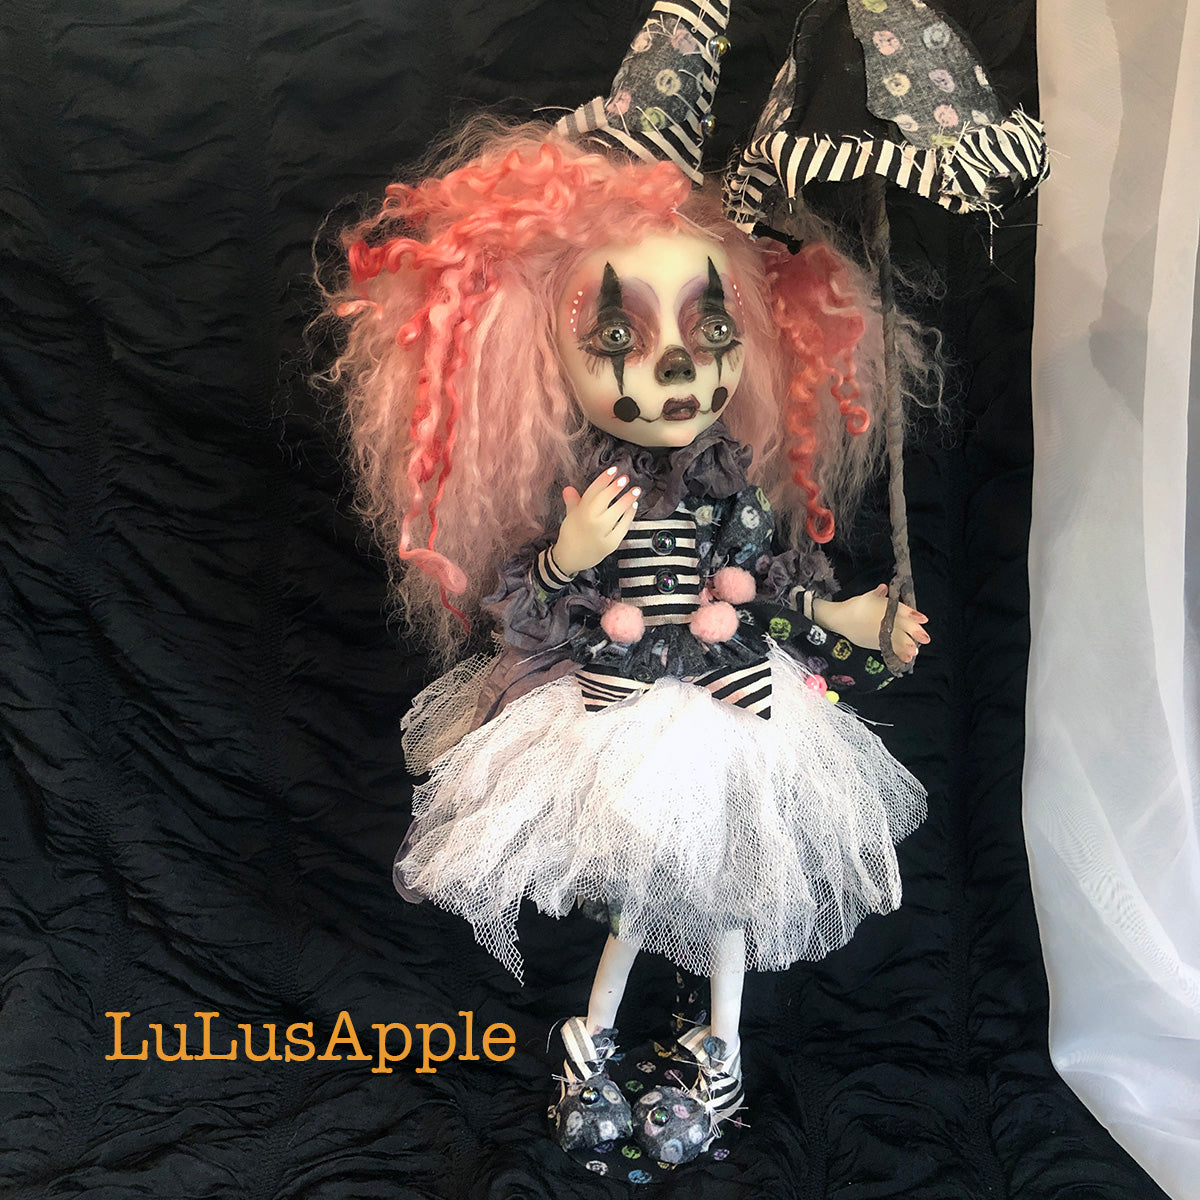 Rainne PoP Bubble Poupee The Clown OOAK Art Doll LuLusApple